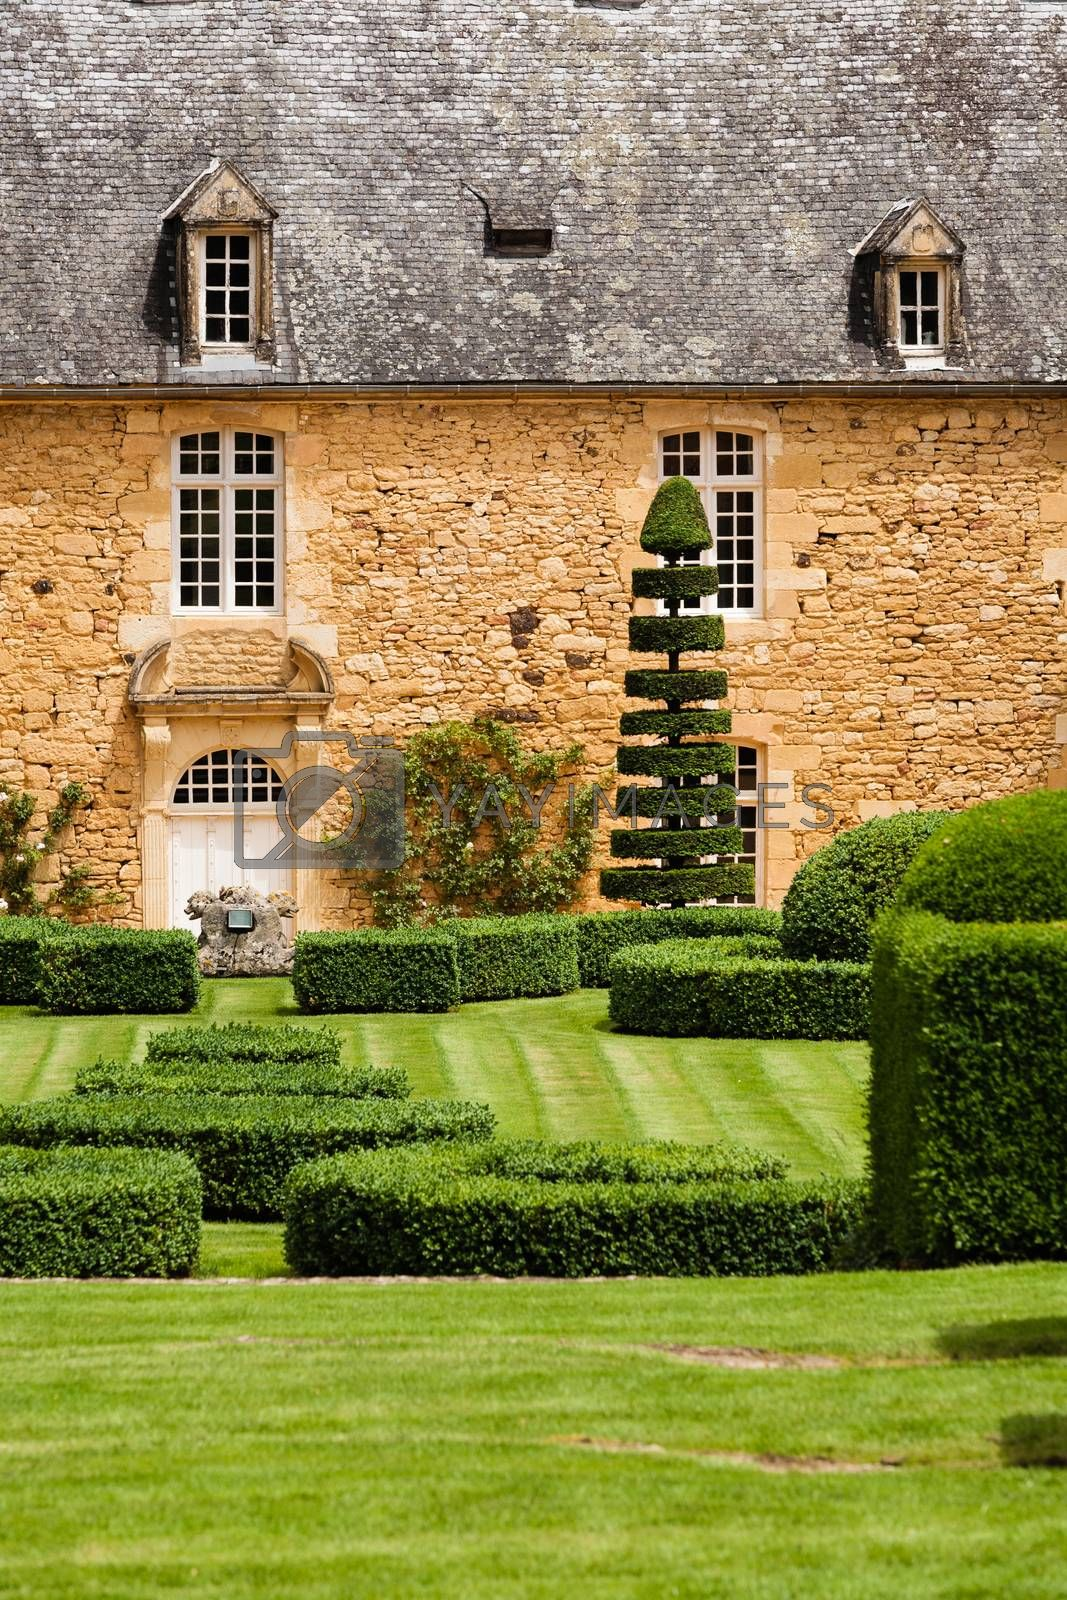 Beautiful house with a french garden in the french region of Dordogne